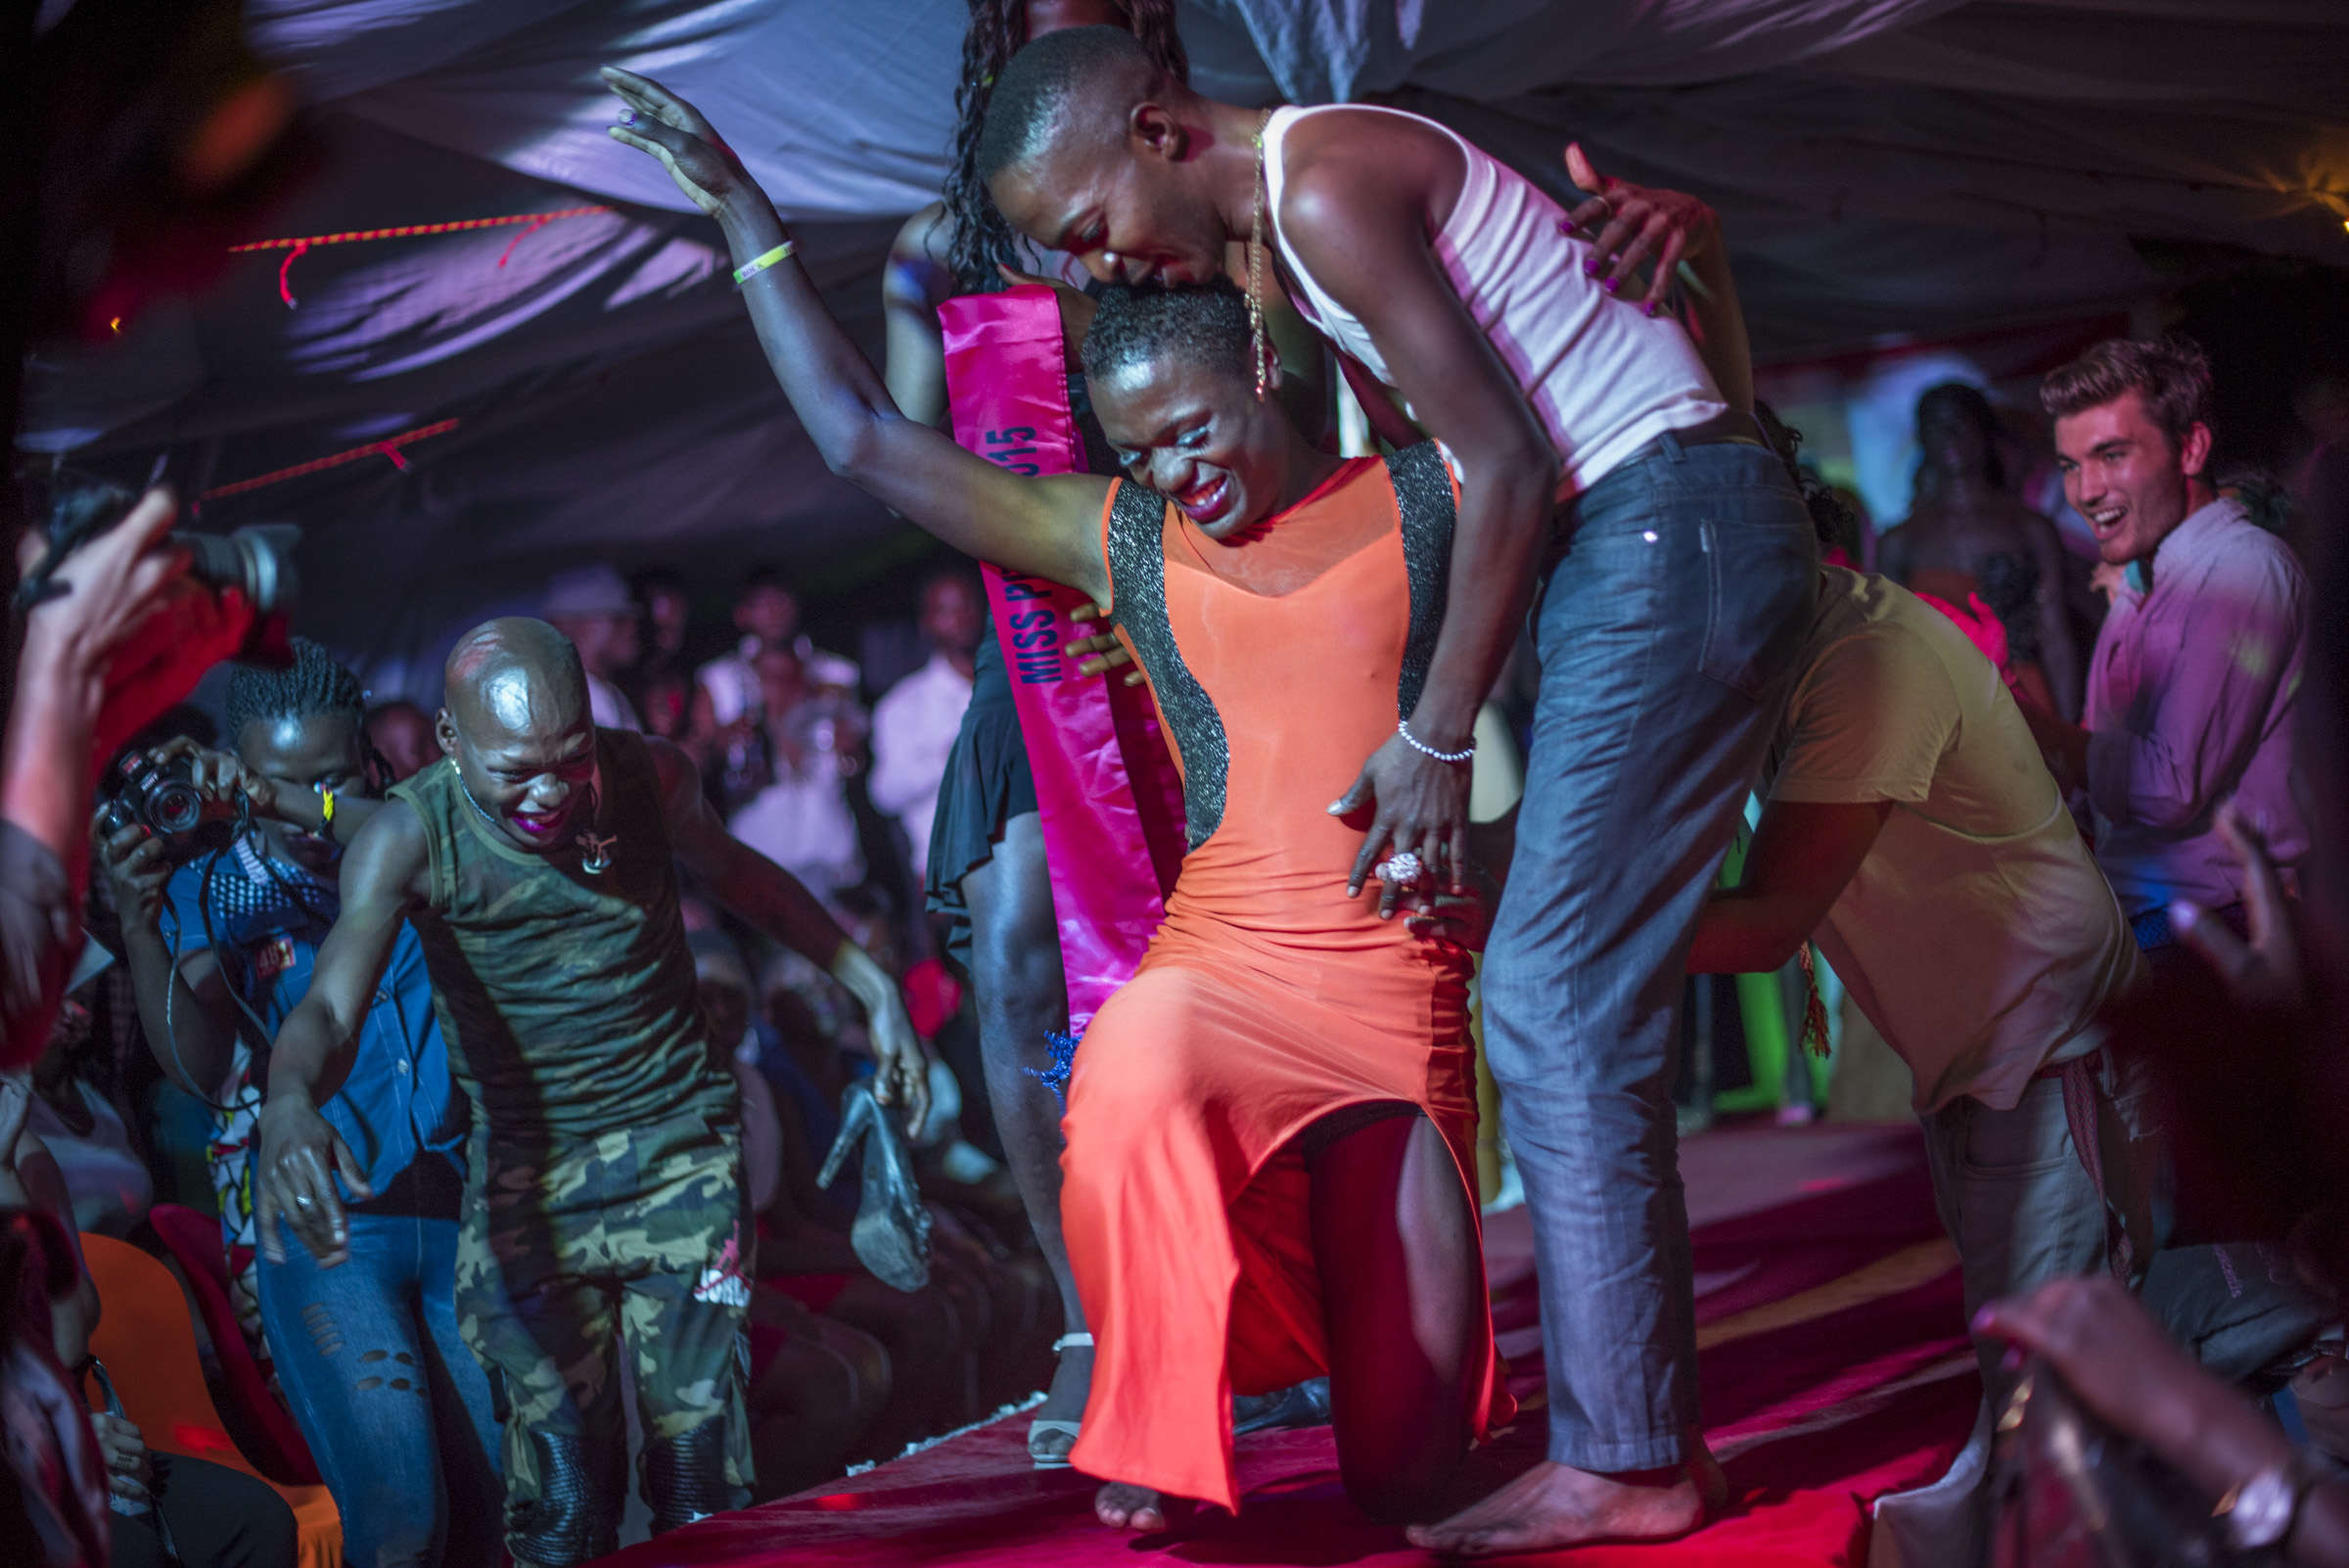 Miss Pride Uganda is announced and crowned. (Photo by Diana Zeyneb Alhindawi/GroundTruth)